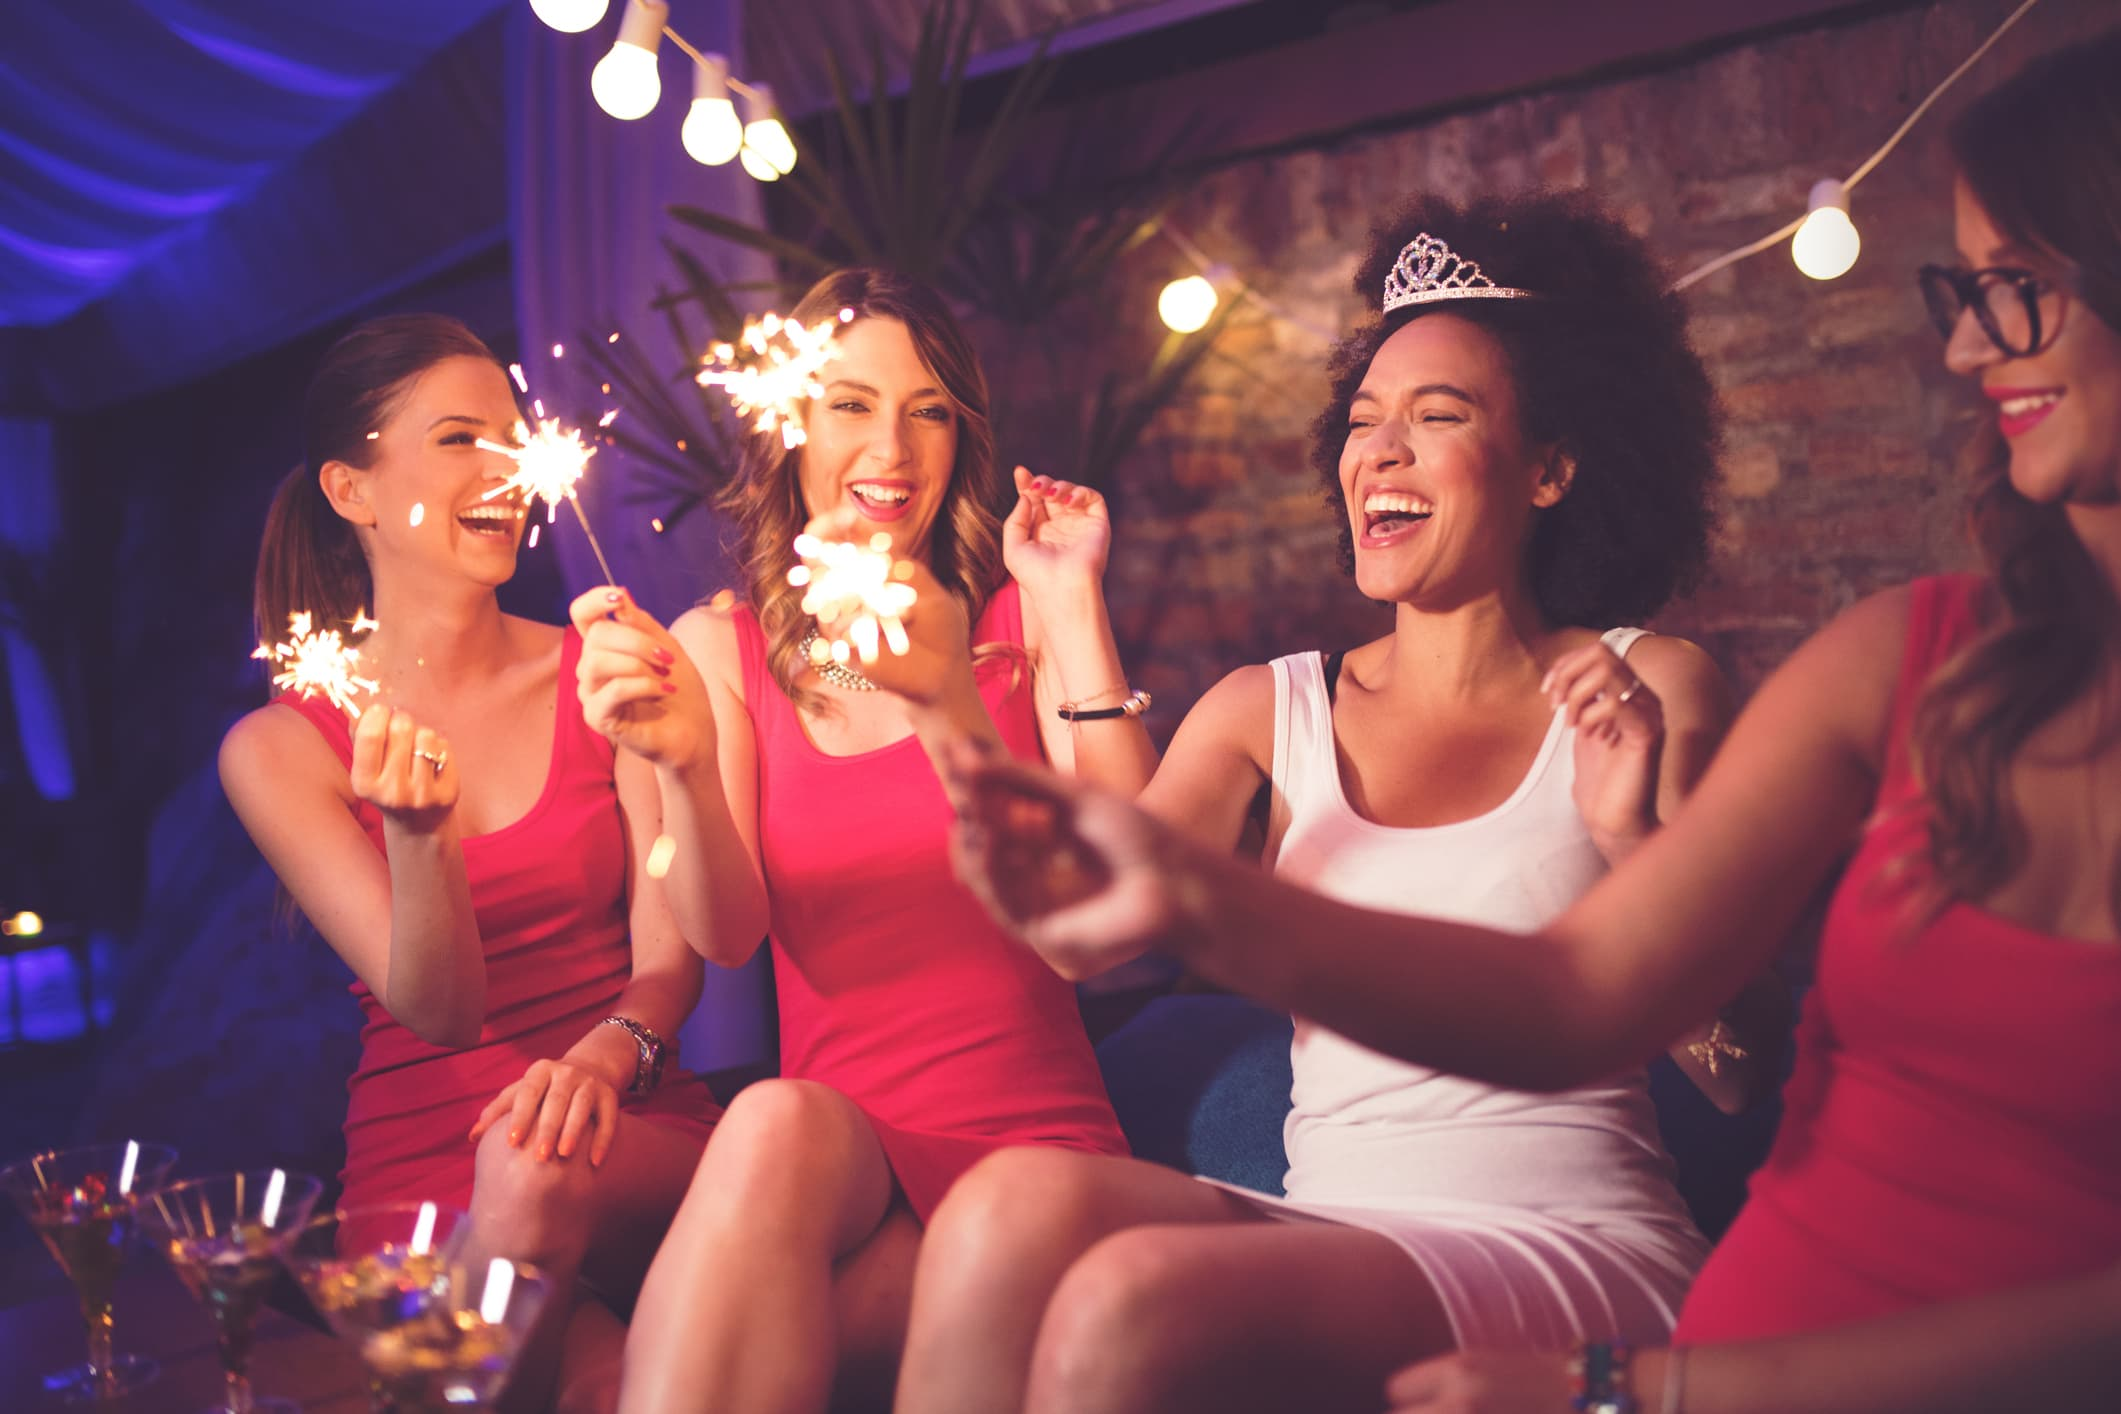 I taught my bridesmaids how to travel hack my bachelorette party using credit cards